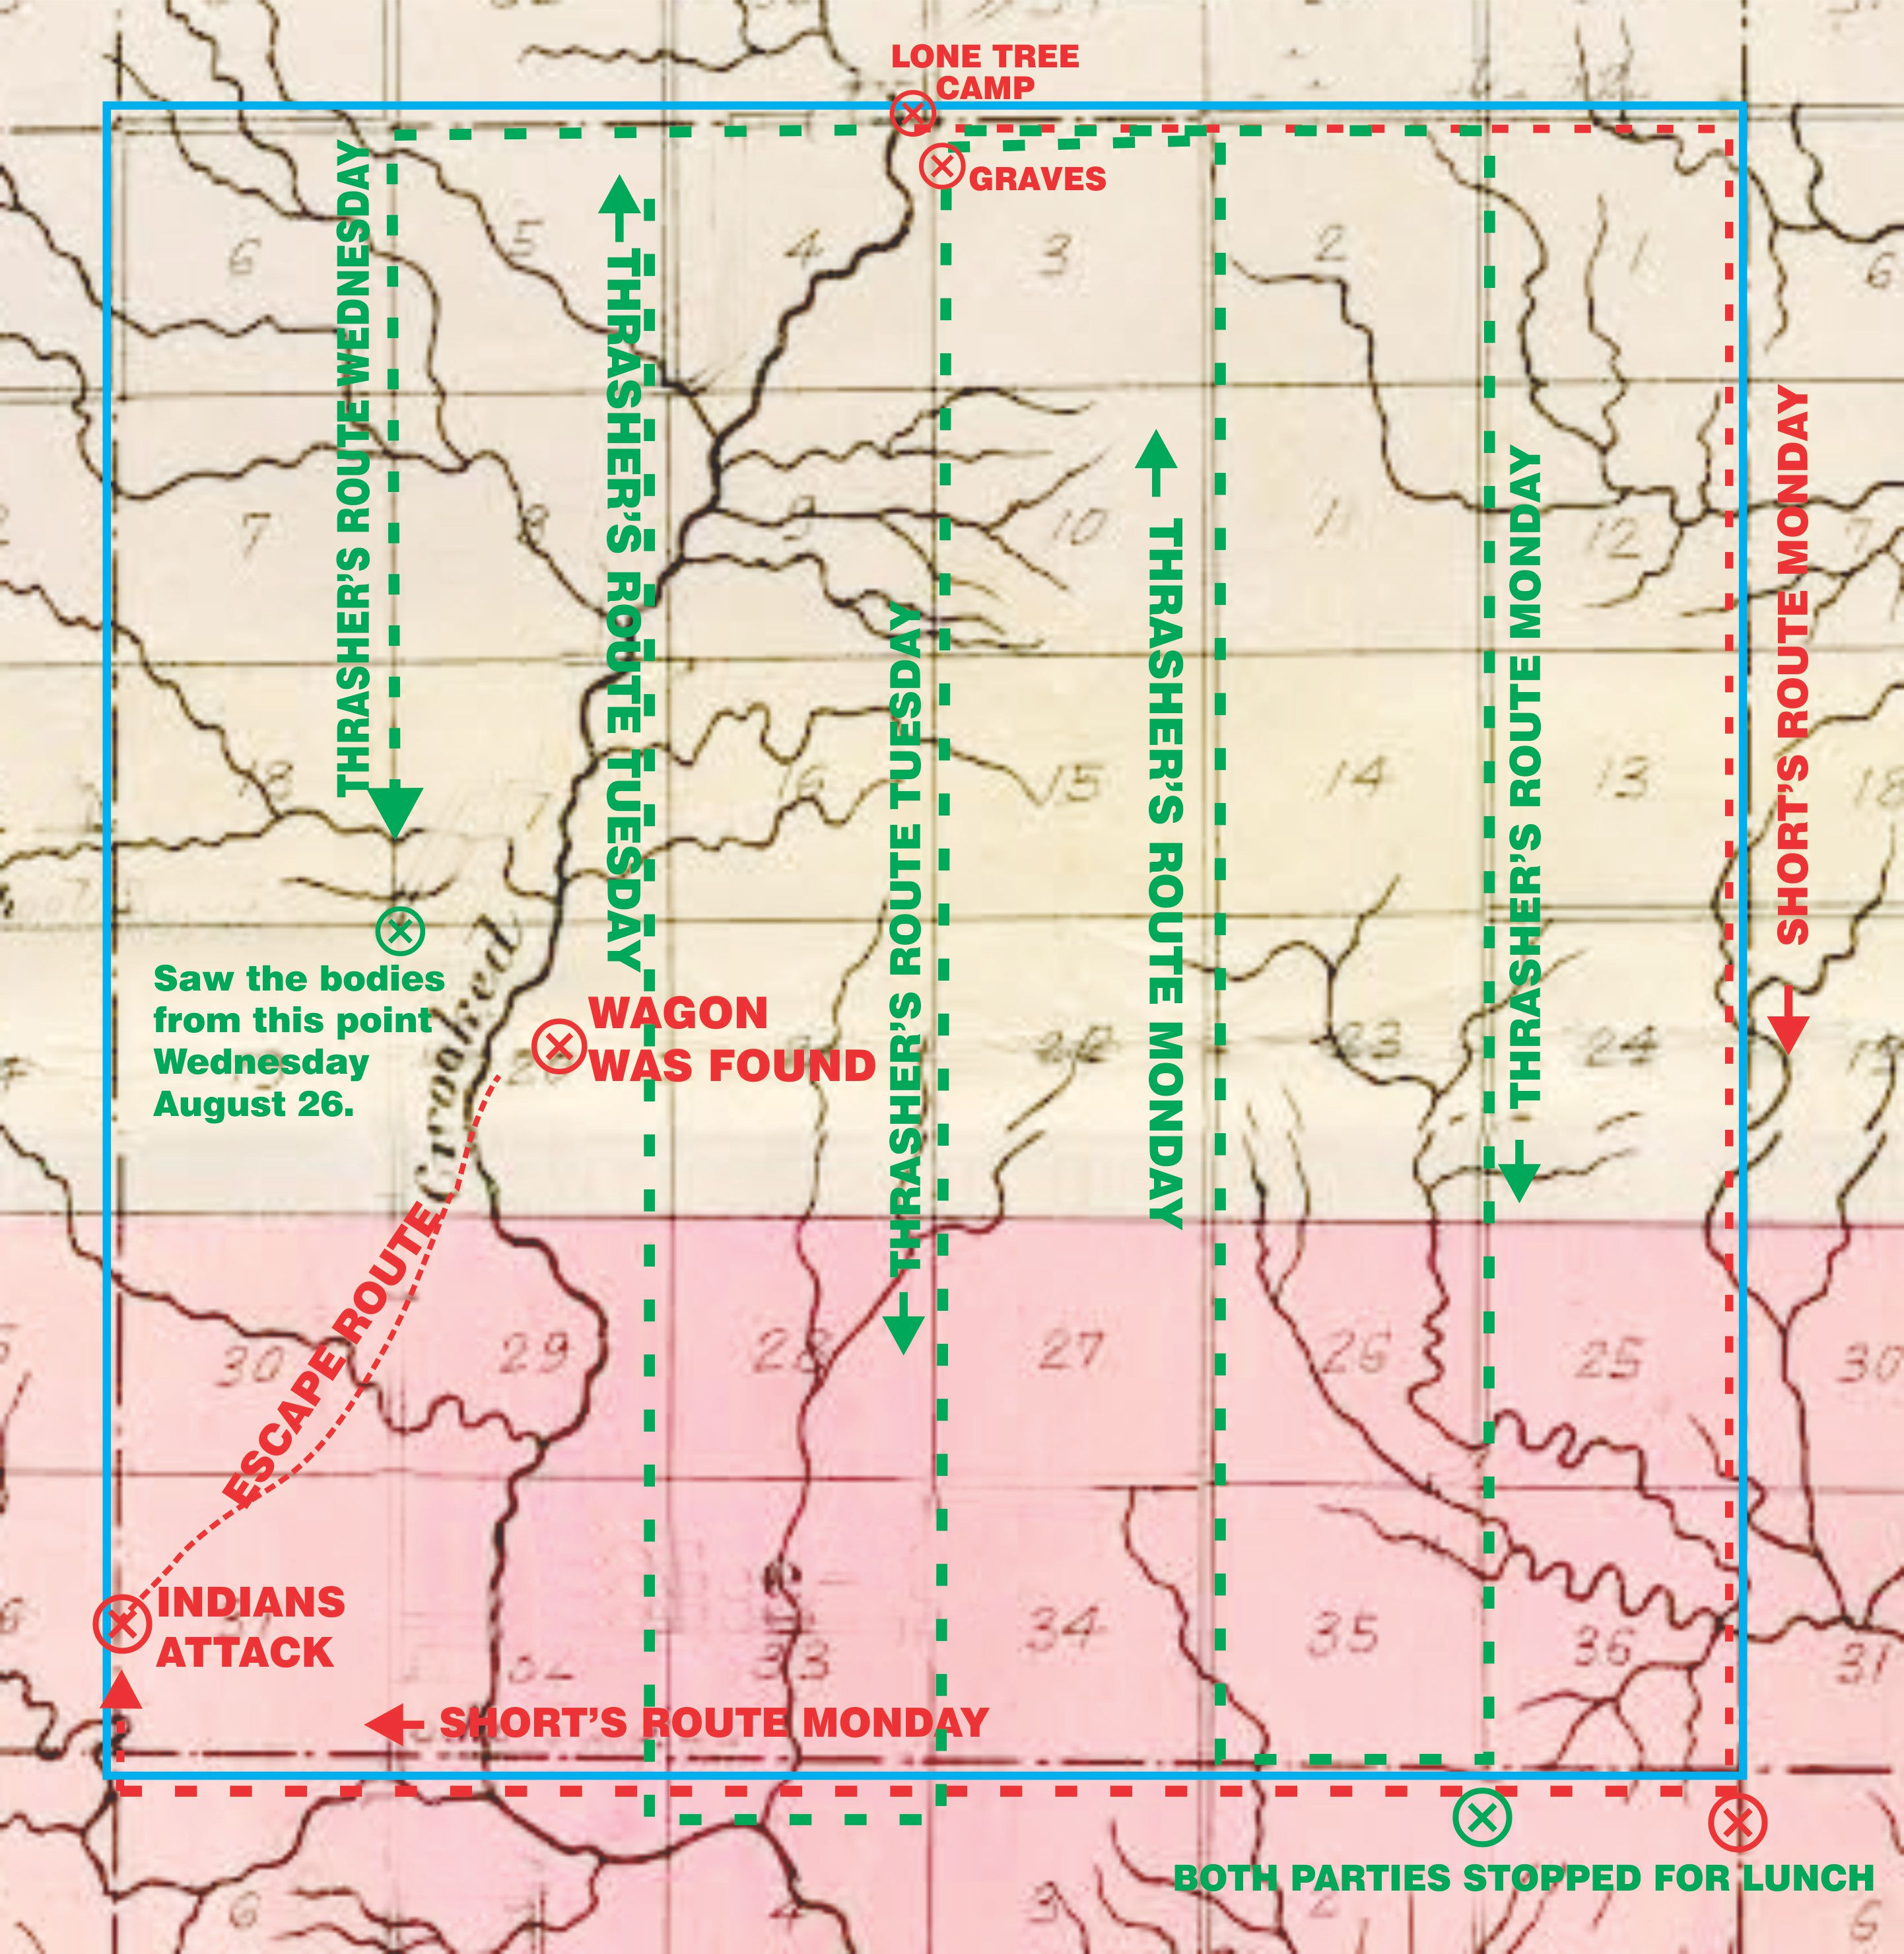 South dakota meade county howes -  South And A Little East Below The Bluffs And What Is Now The Sand Pit You Will Be Looking At The Location Where The Wagon And Captain Short S Slain